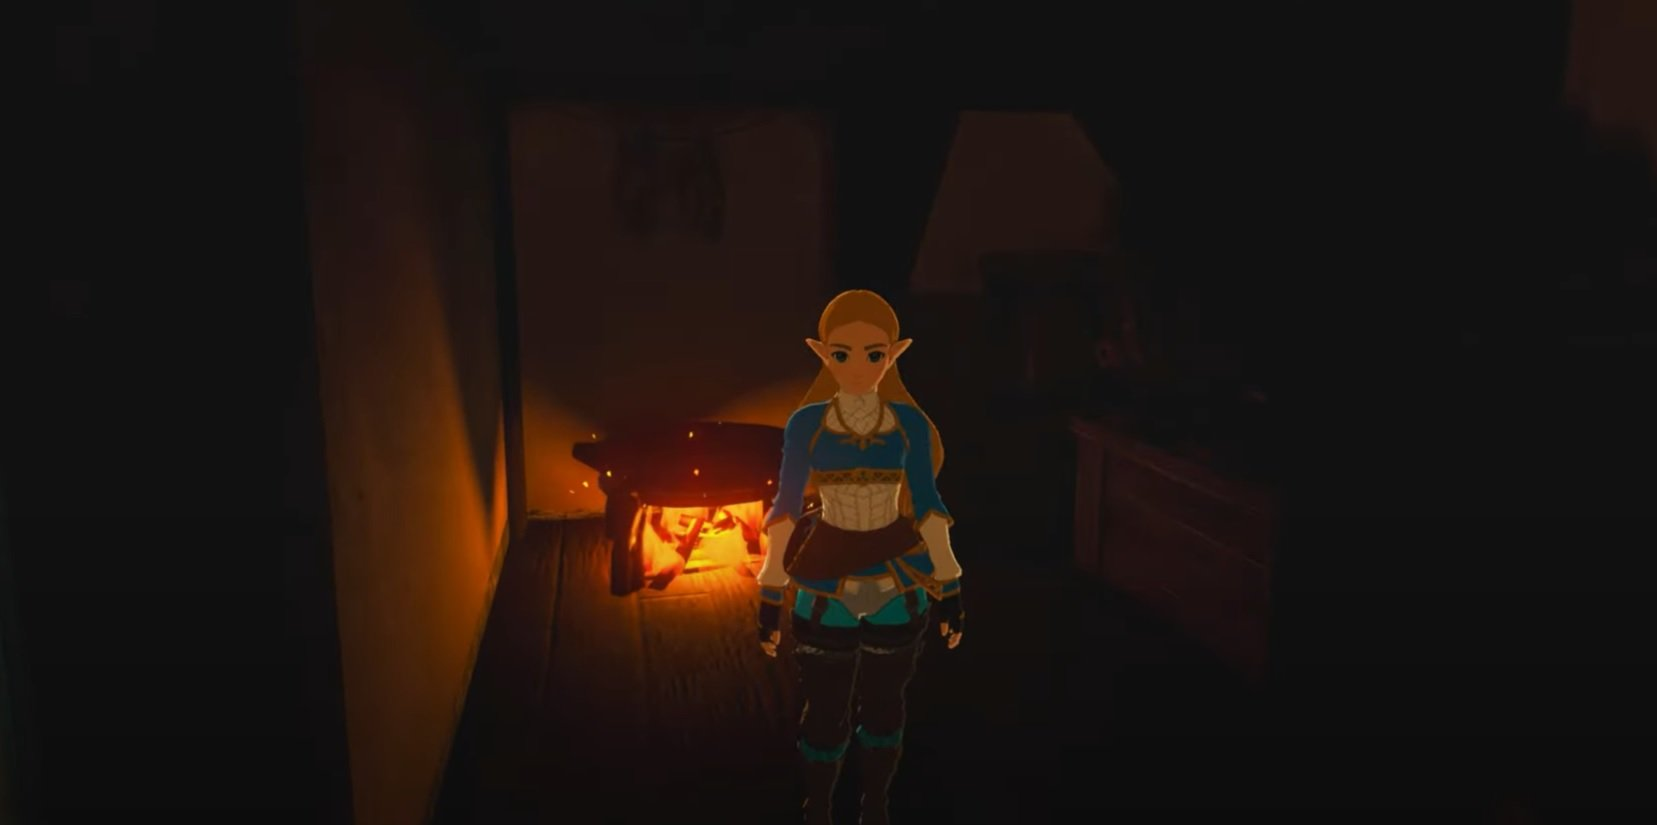 This Zelda: Breath of the Wild mod tricks out Link's house screenshot